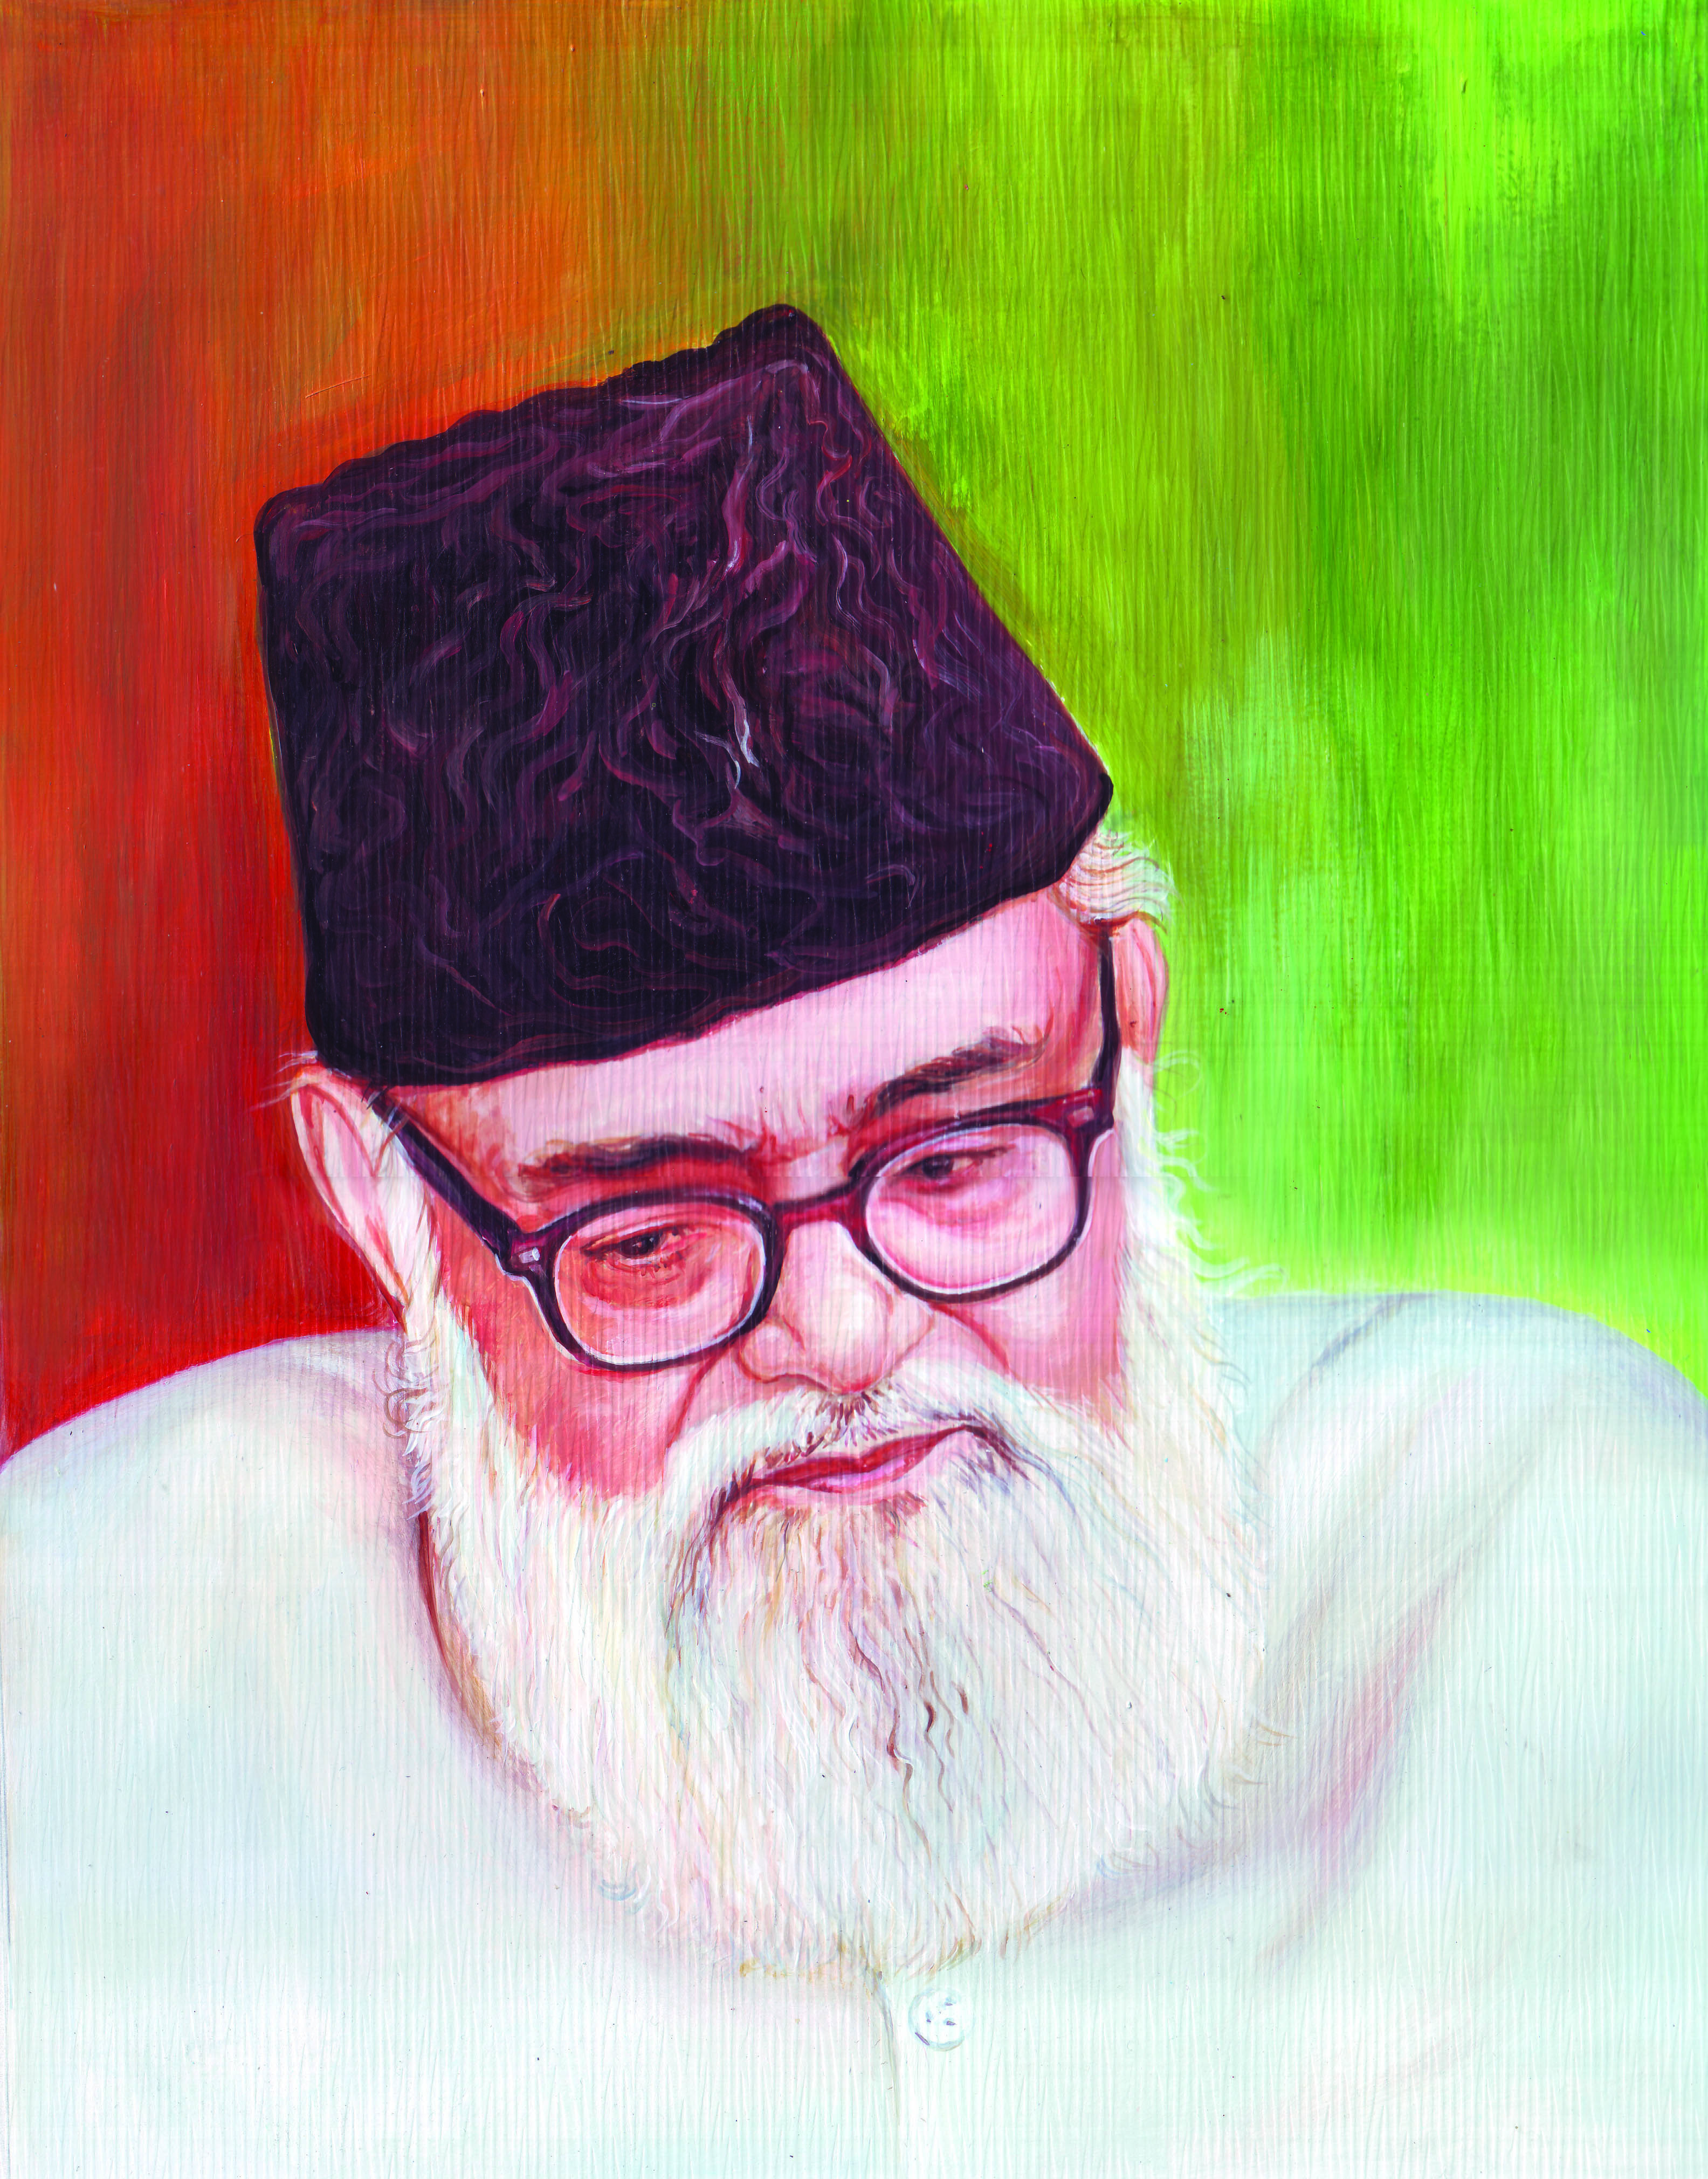 Abul A'la Maududi, the founder of the Jamaat-e-Islami, the largest Islamist organisation in Asia